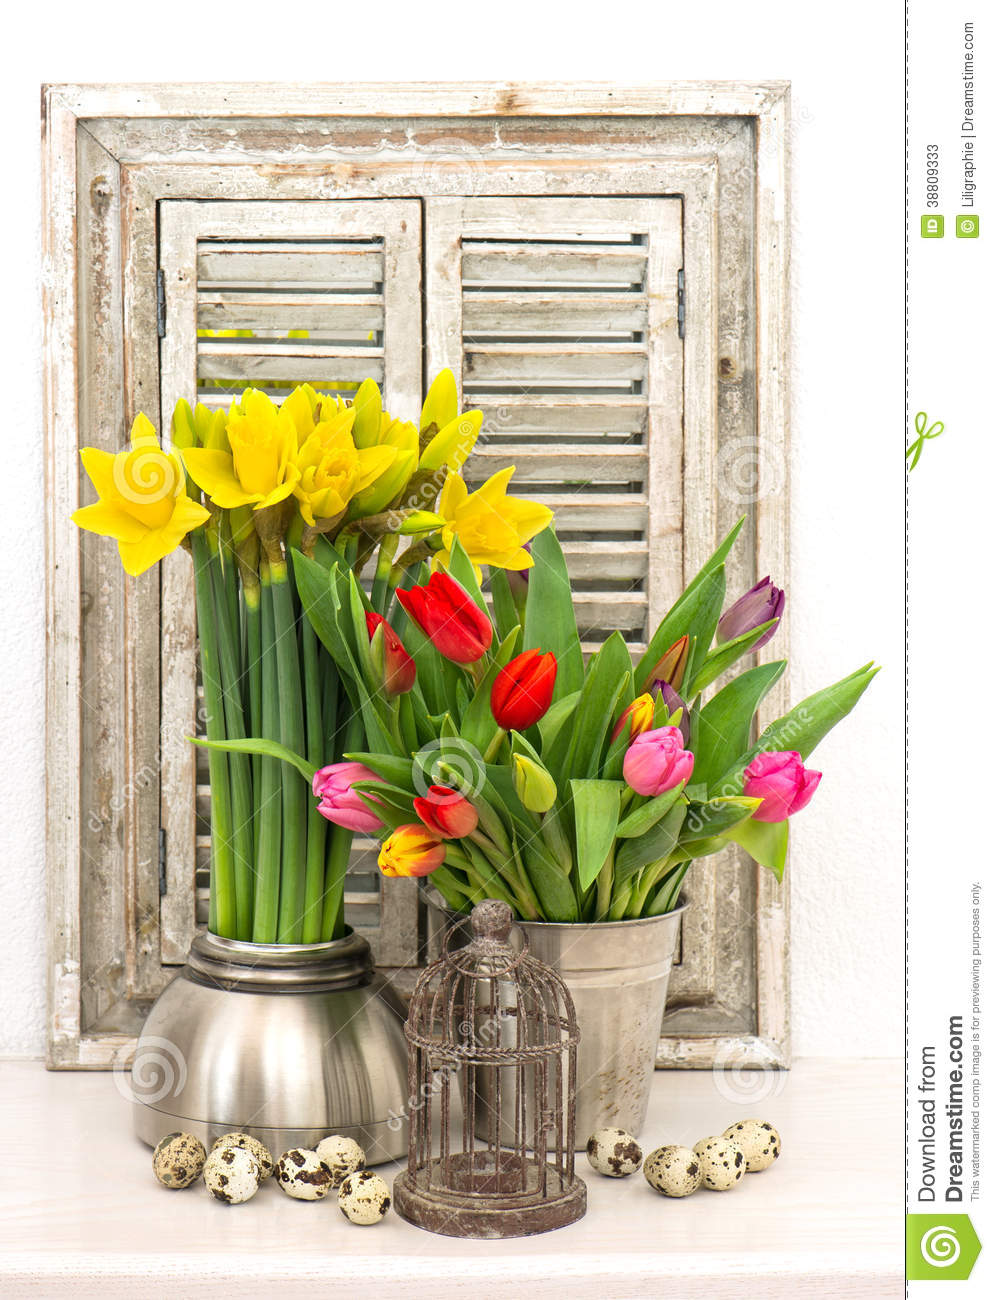 Home Decoration With Spring Flowers Easter Eggs Stock